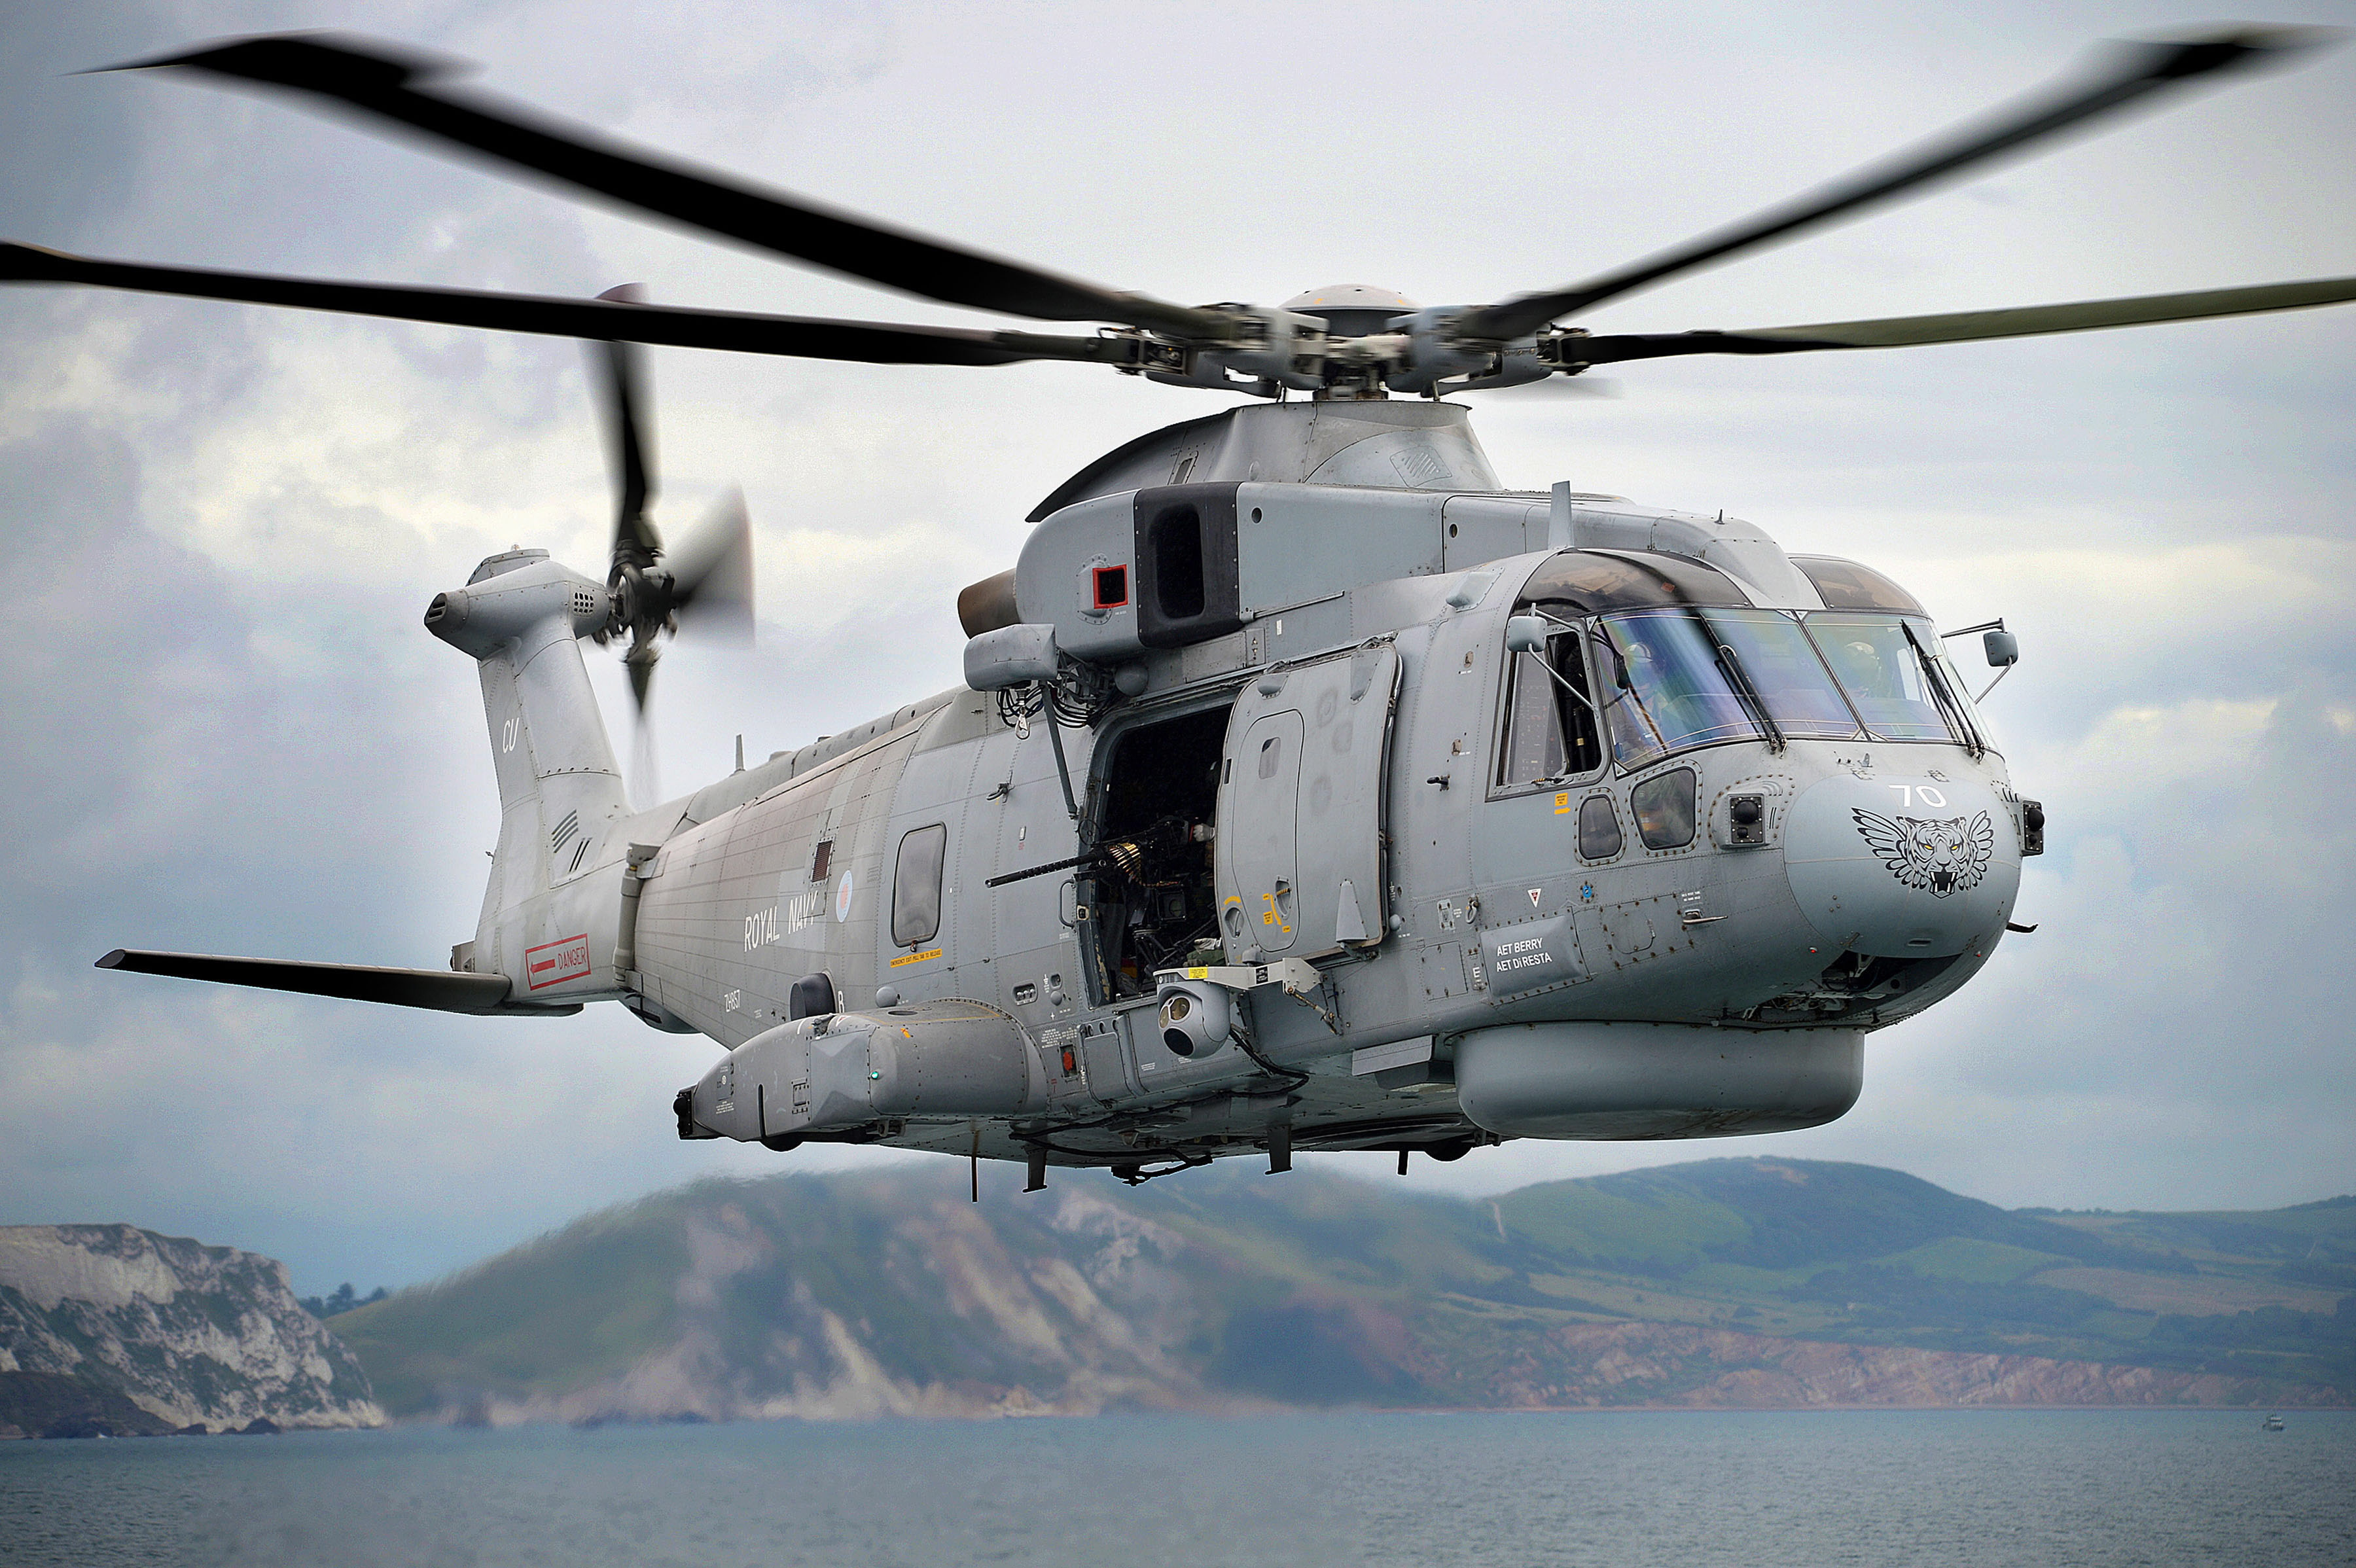 vvip helicopter with Leonardo Is Trying To Sell Aw101 Merlin Helicopter To The Polish Navy on Watch together with Plane Spotting Helicopters Indian Air Force together with 228 besides luxuo   aircraft karllagerfeldtodesignhelicopters moreover Five Fine Helicopters 1443243709.